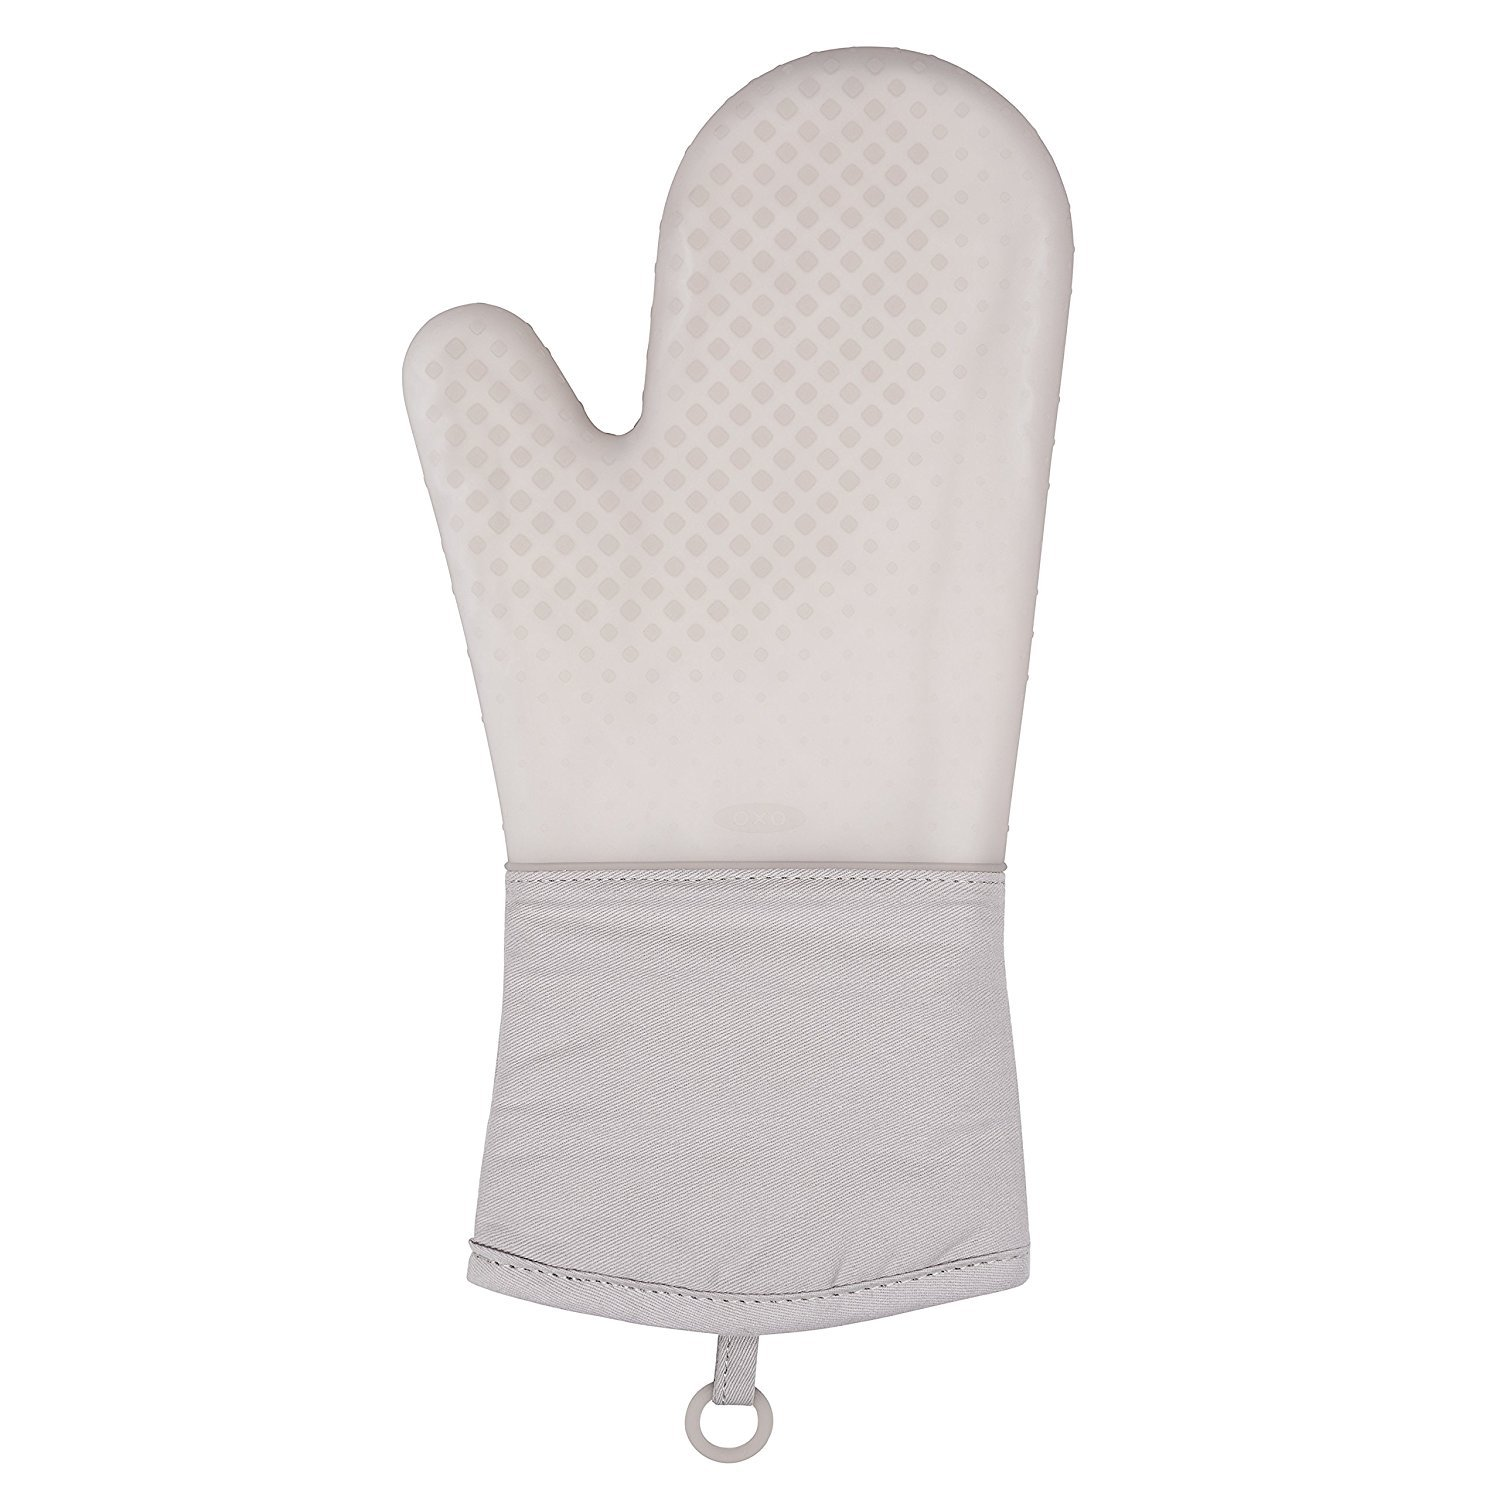 OXO Good Grips Silicone Oven Mitt - Gray